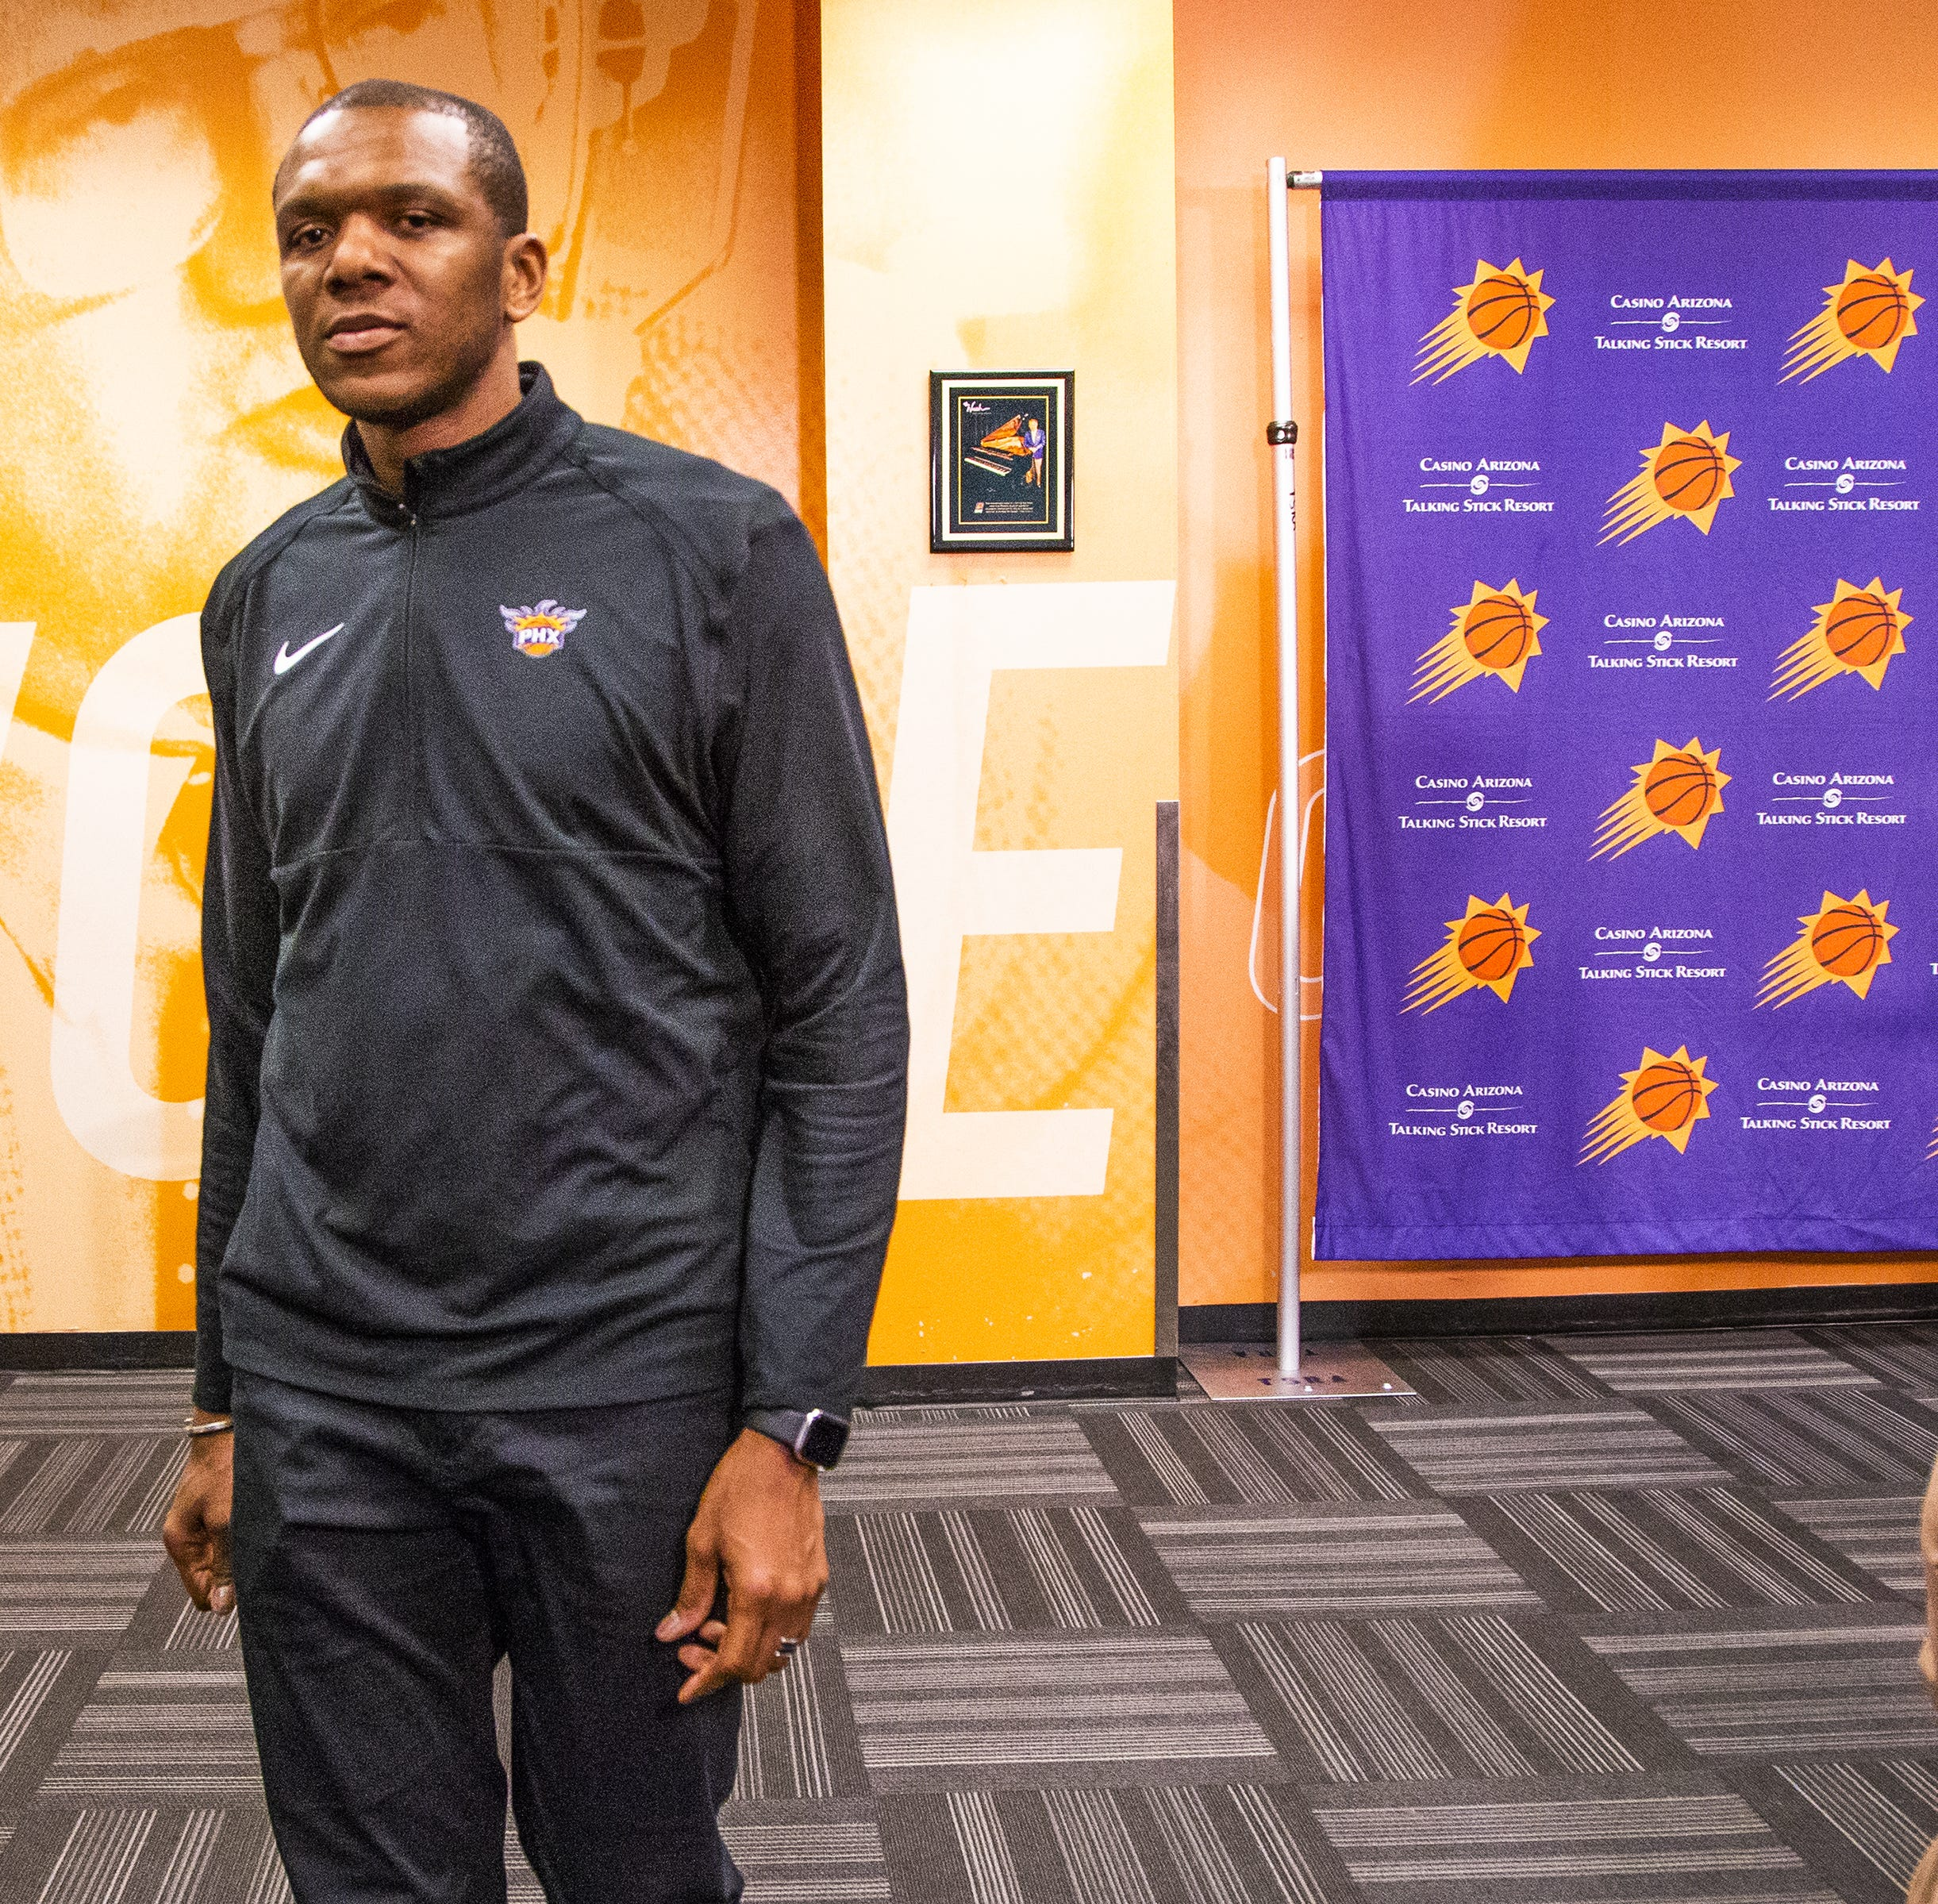 Suns owner Robert Sarver seems content in background as James Jones now runs the show